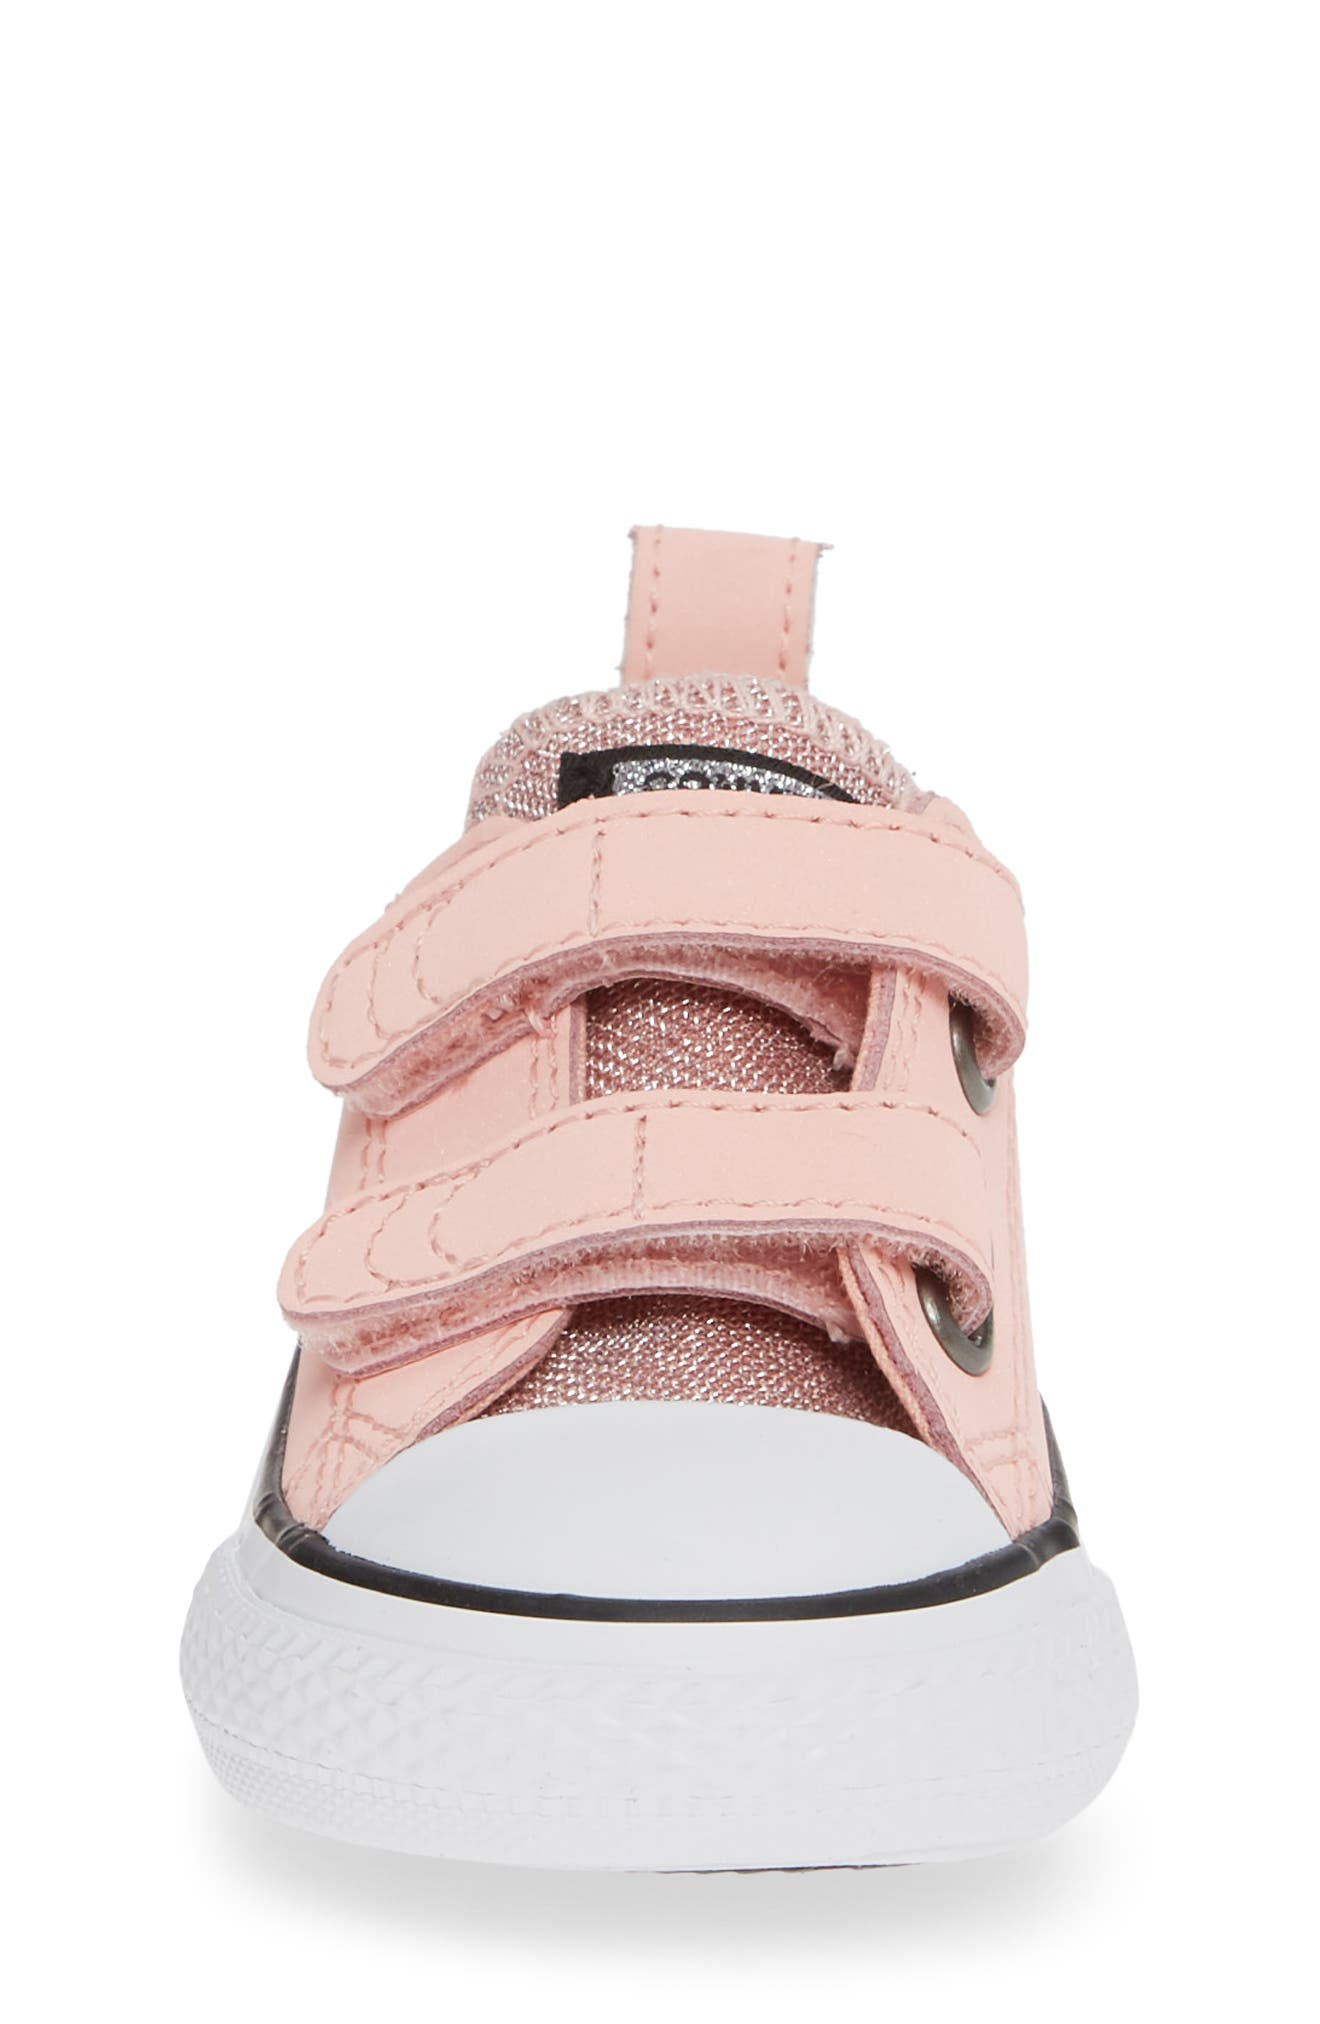 All Star<sup>®</sup> Seasonal Glitter Sneaker,                             Alternate thumbnail 4, color,                             STORM PINK